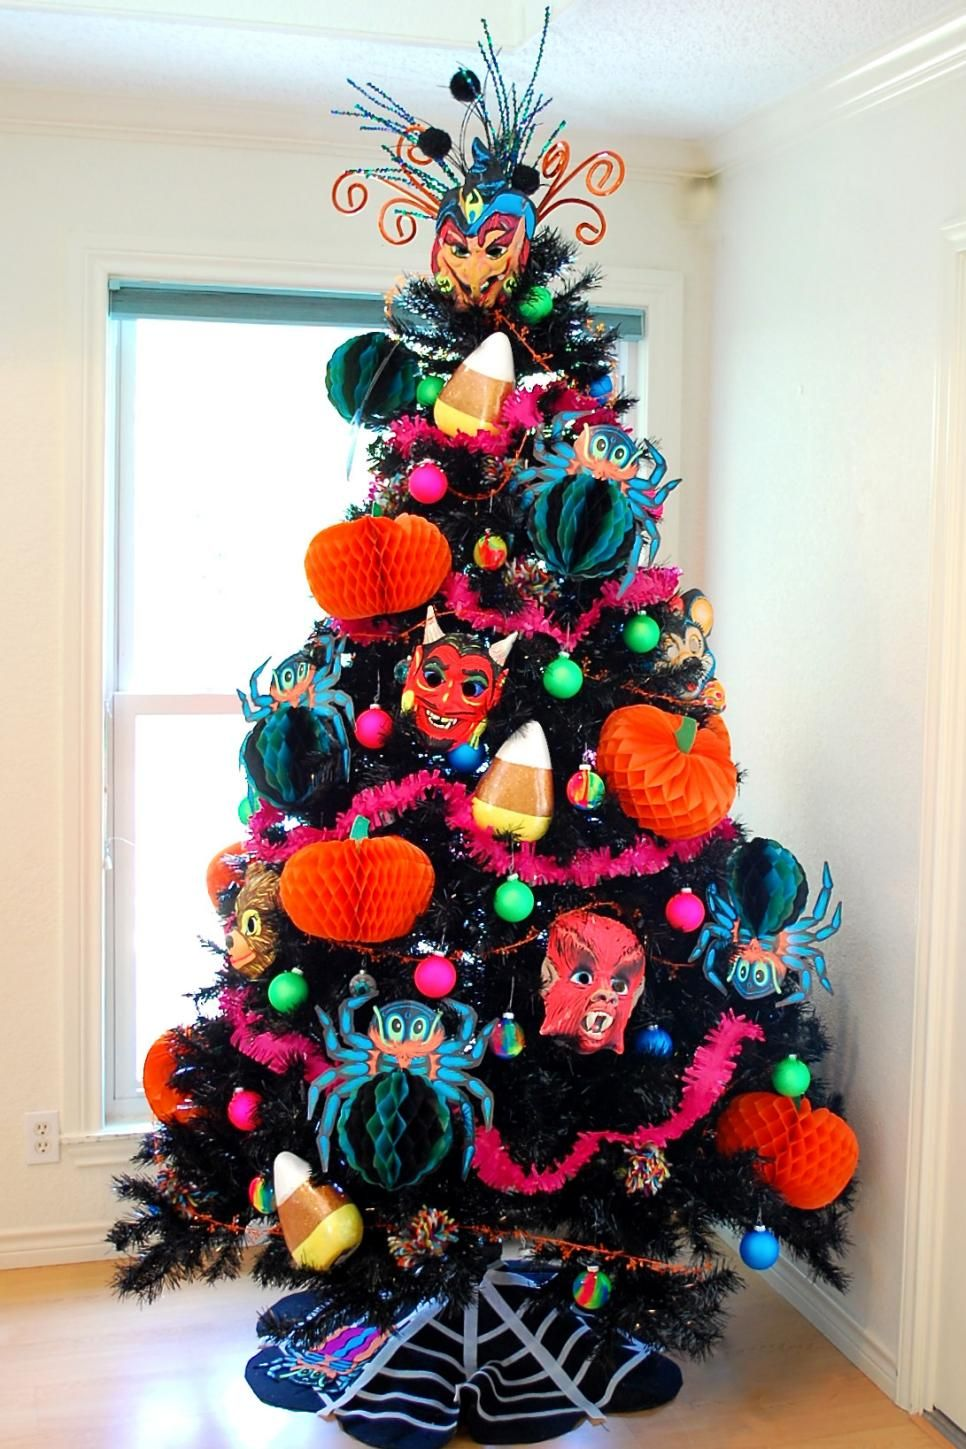 Decorating a tree isn't just for Christmas, DIY Network ...